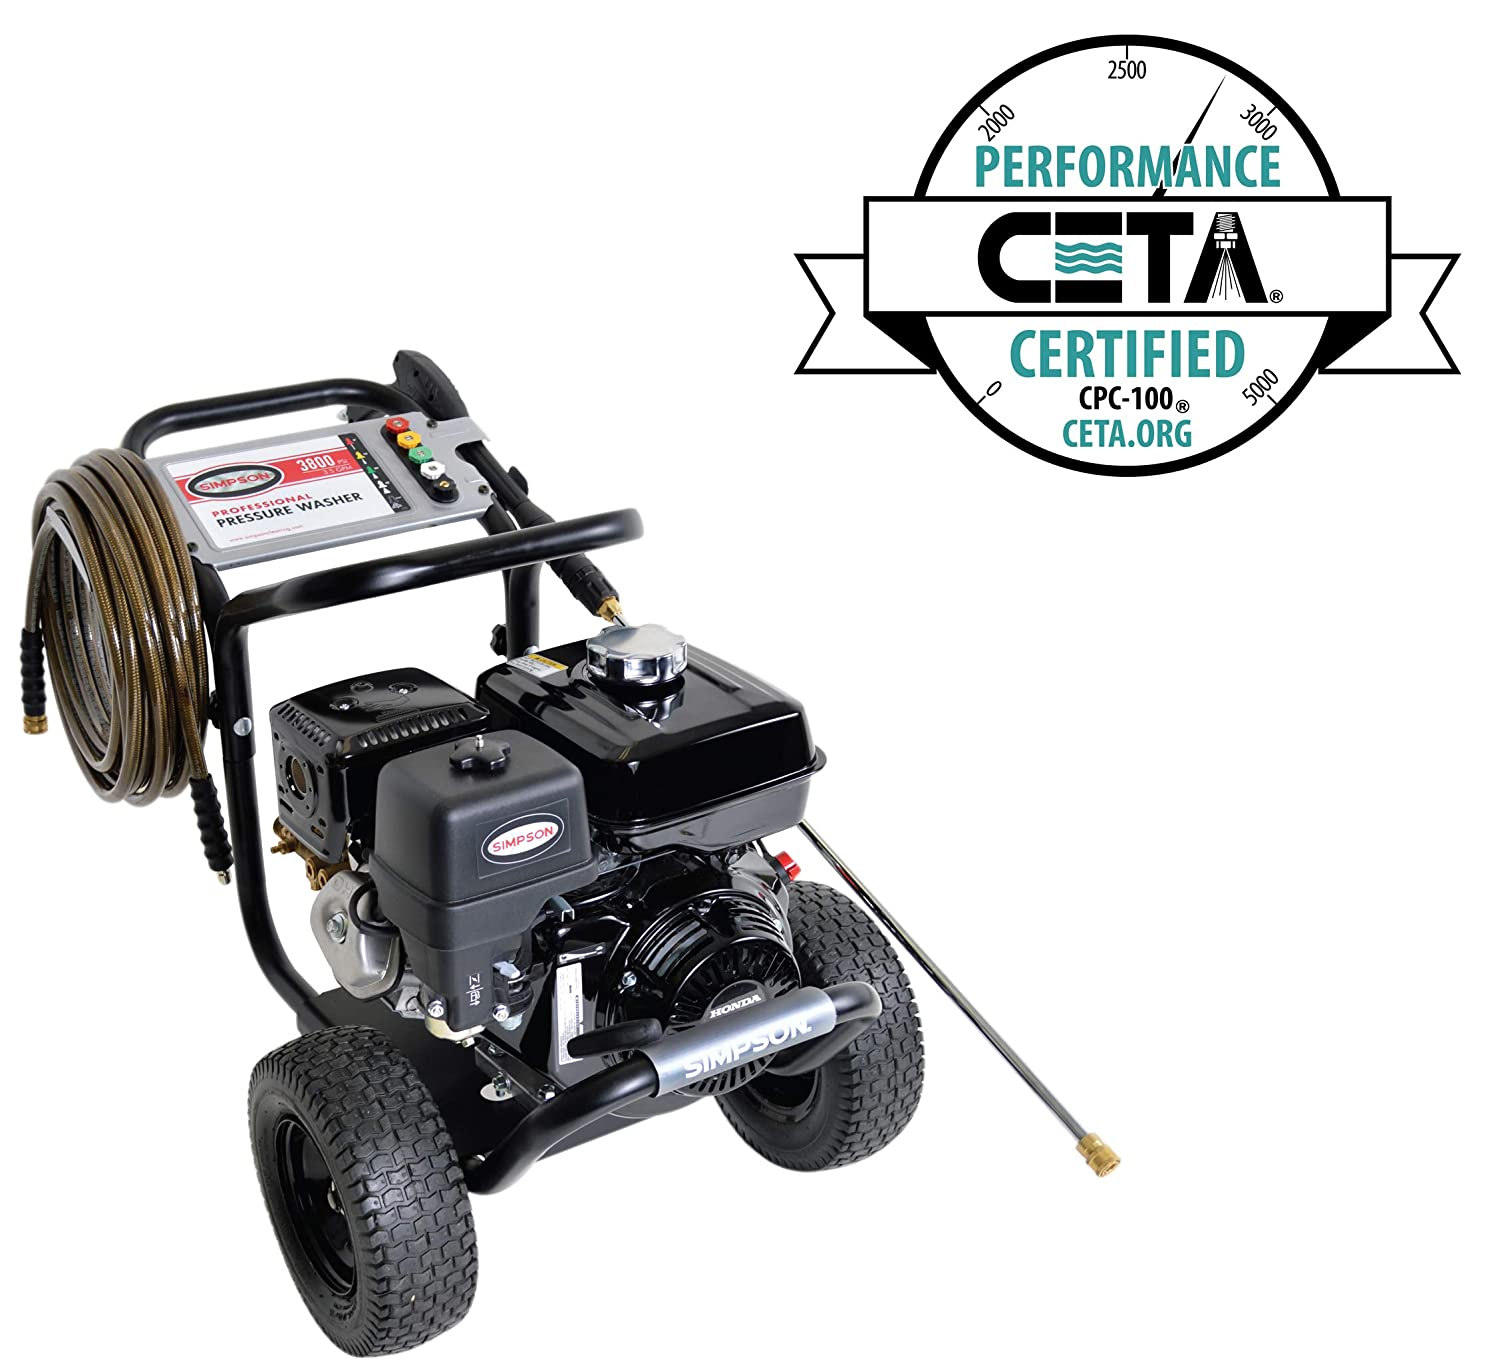 Amazon.com : Simpson Cleaning PS3835 3800 PSI at 3.5 GPM Gas Pressure Washer  Powered by HONDA with AAA Triplex Pump : Garden & Outdoor